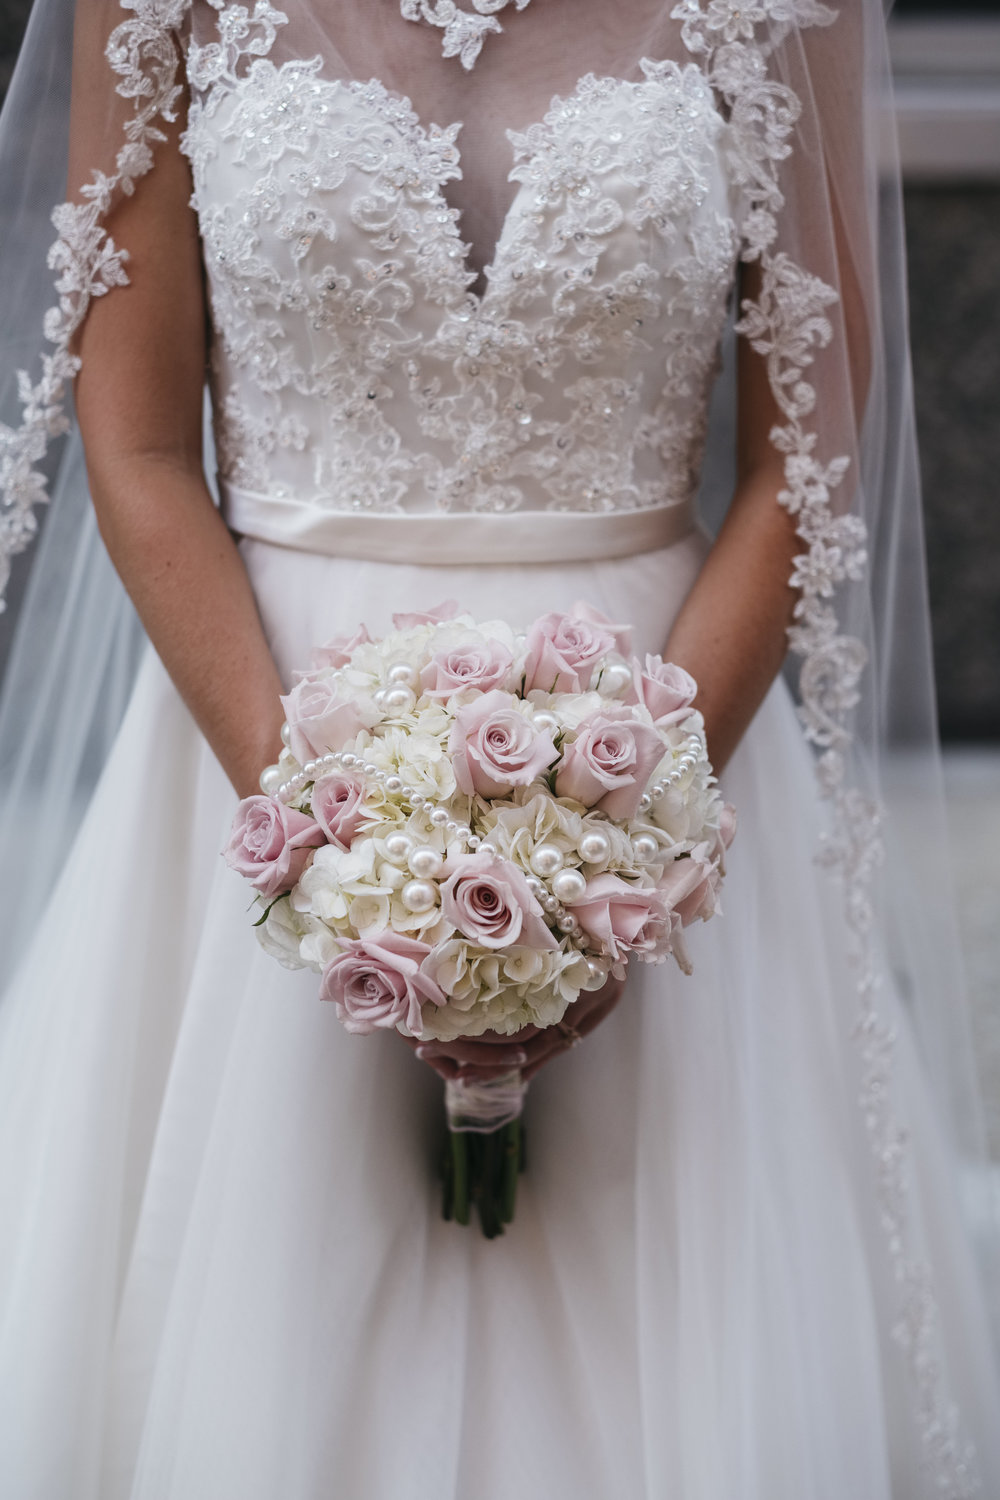 Wedding Dress and Floral Design in Toledo Ohio with Wedding Photographers